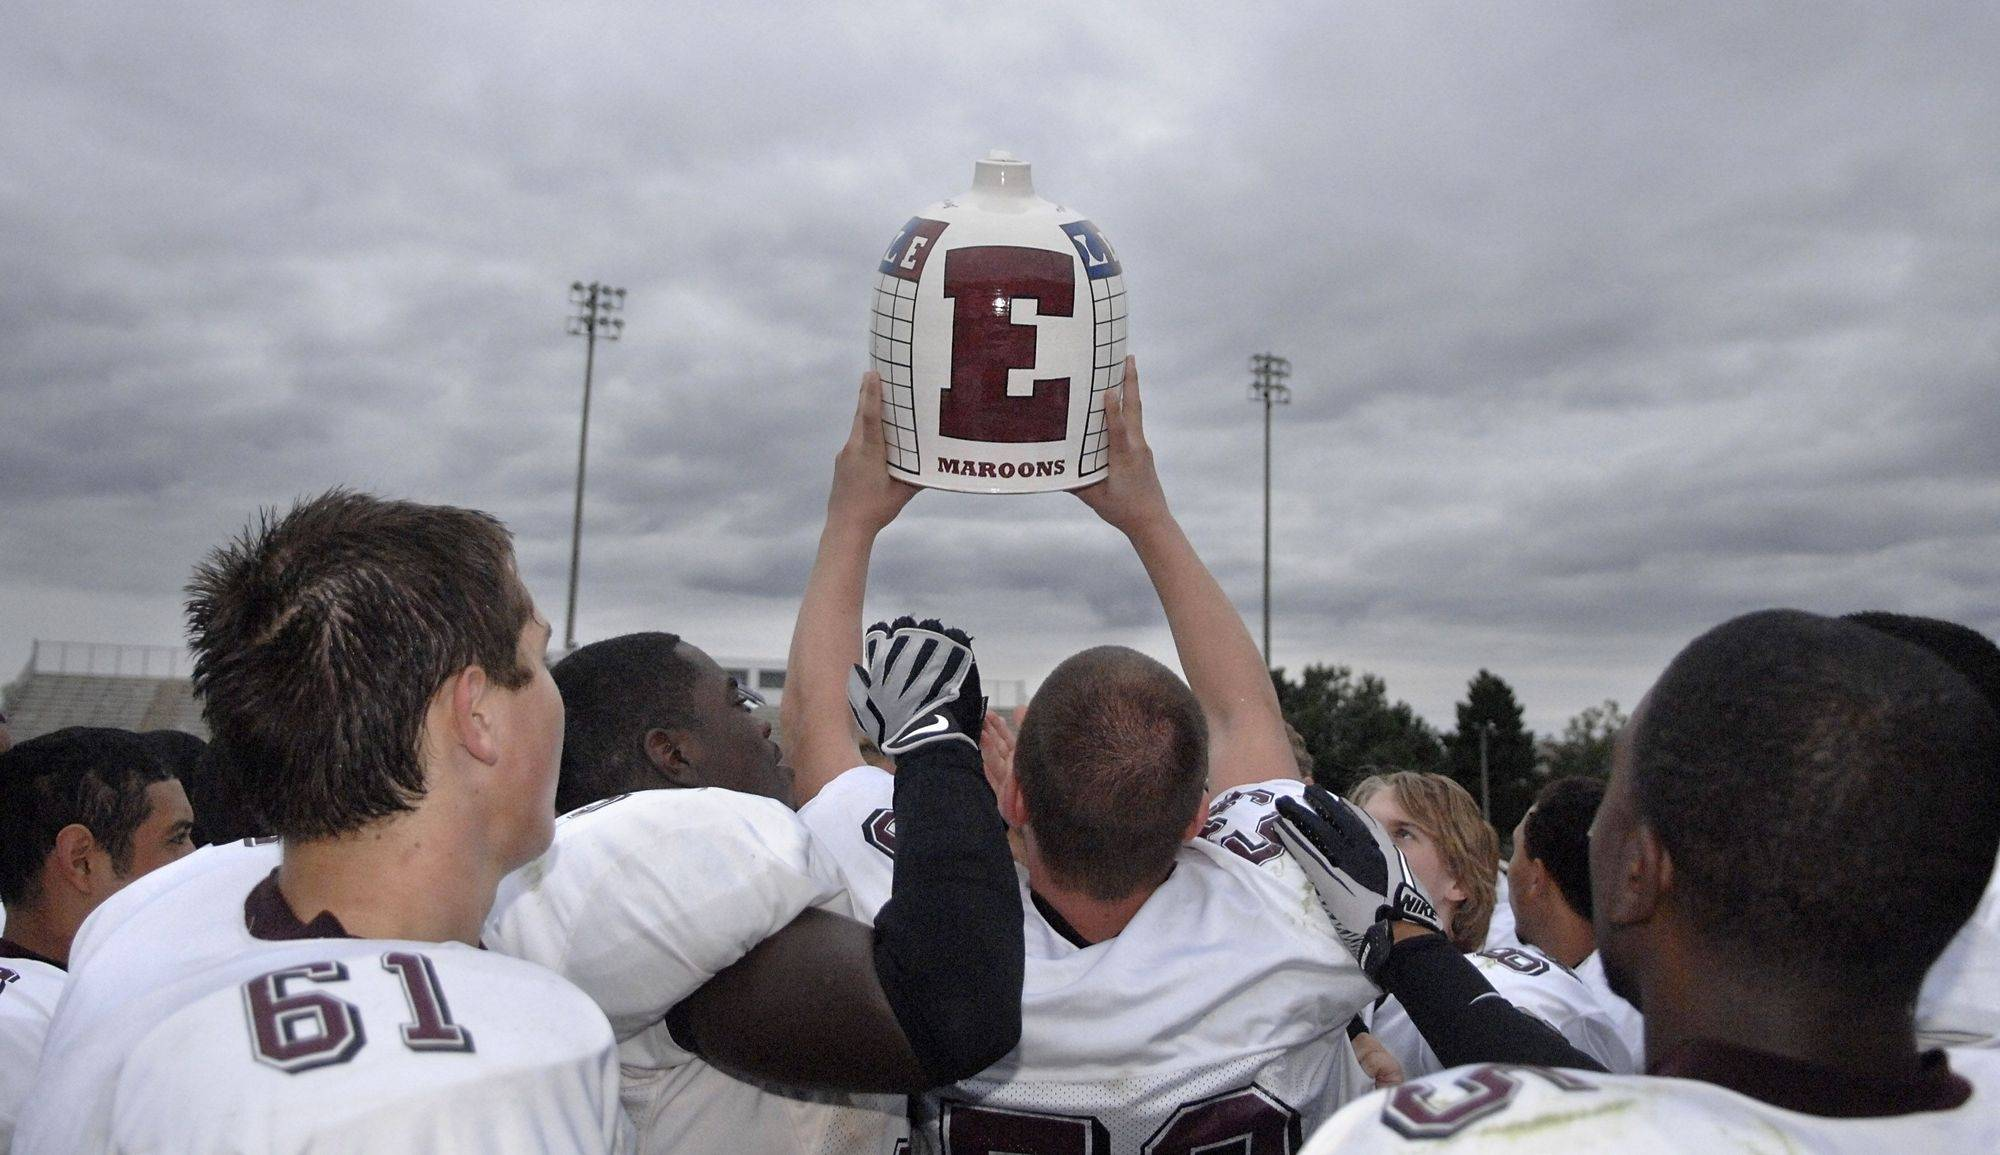 Elgin's D.J. Riggio hoists the jug overhead in the Maroons victory over Larkin on Saturday, September 25.